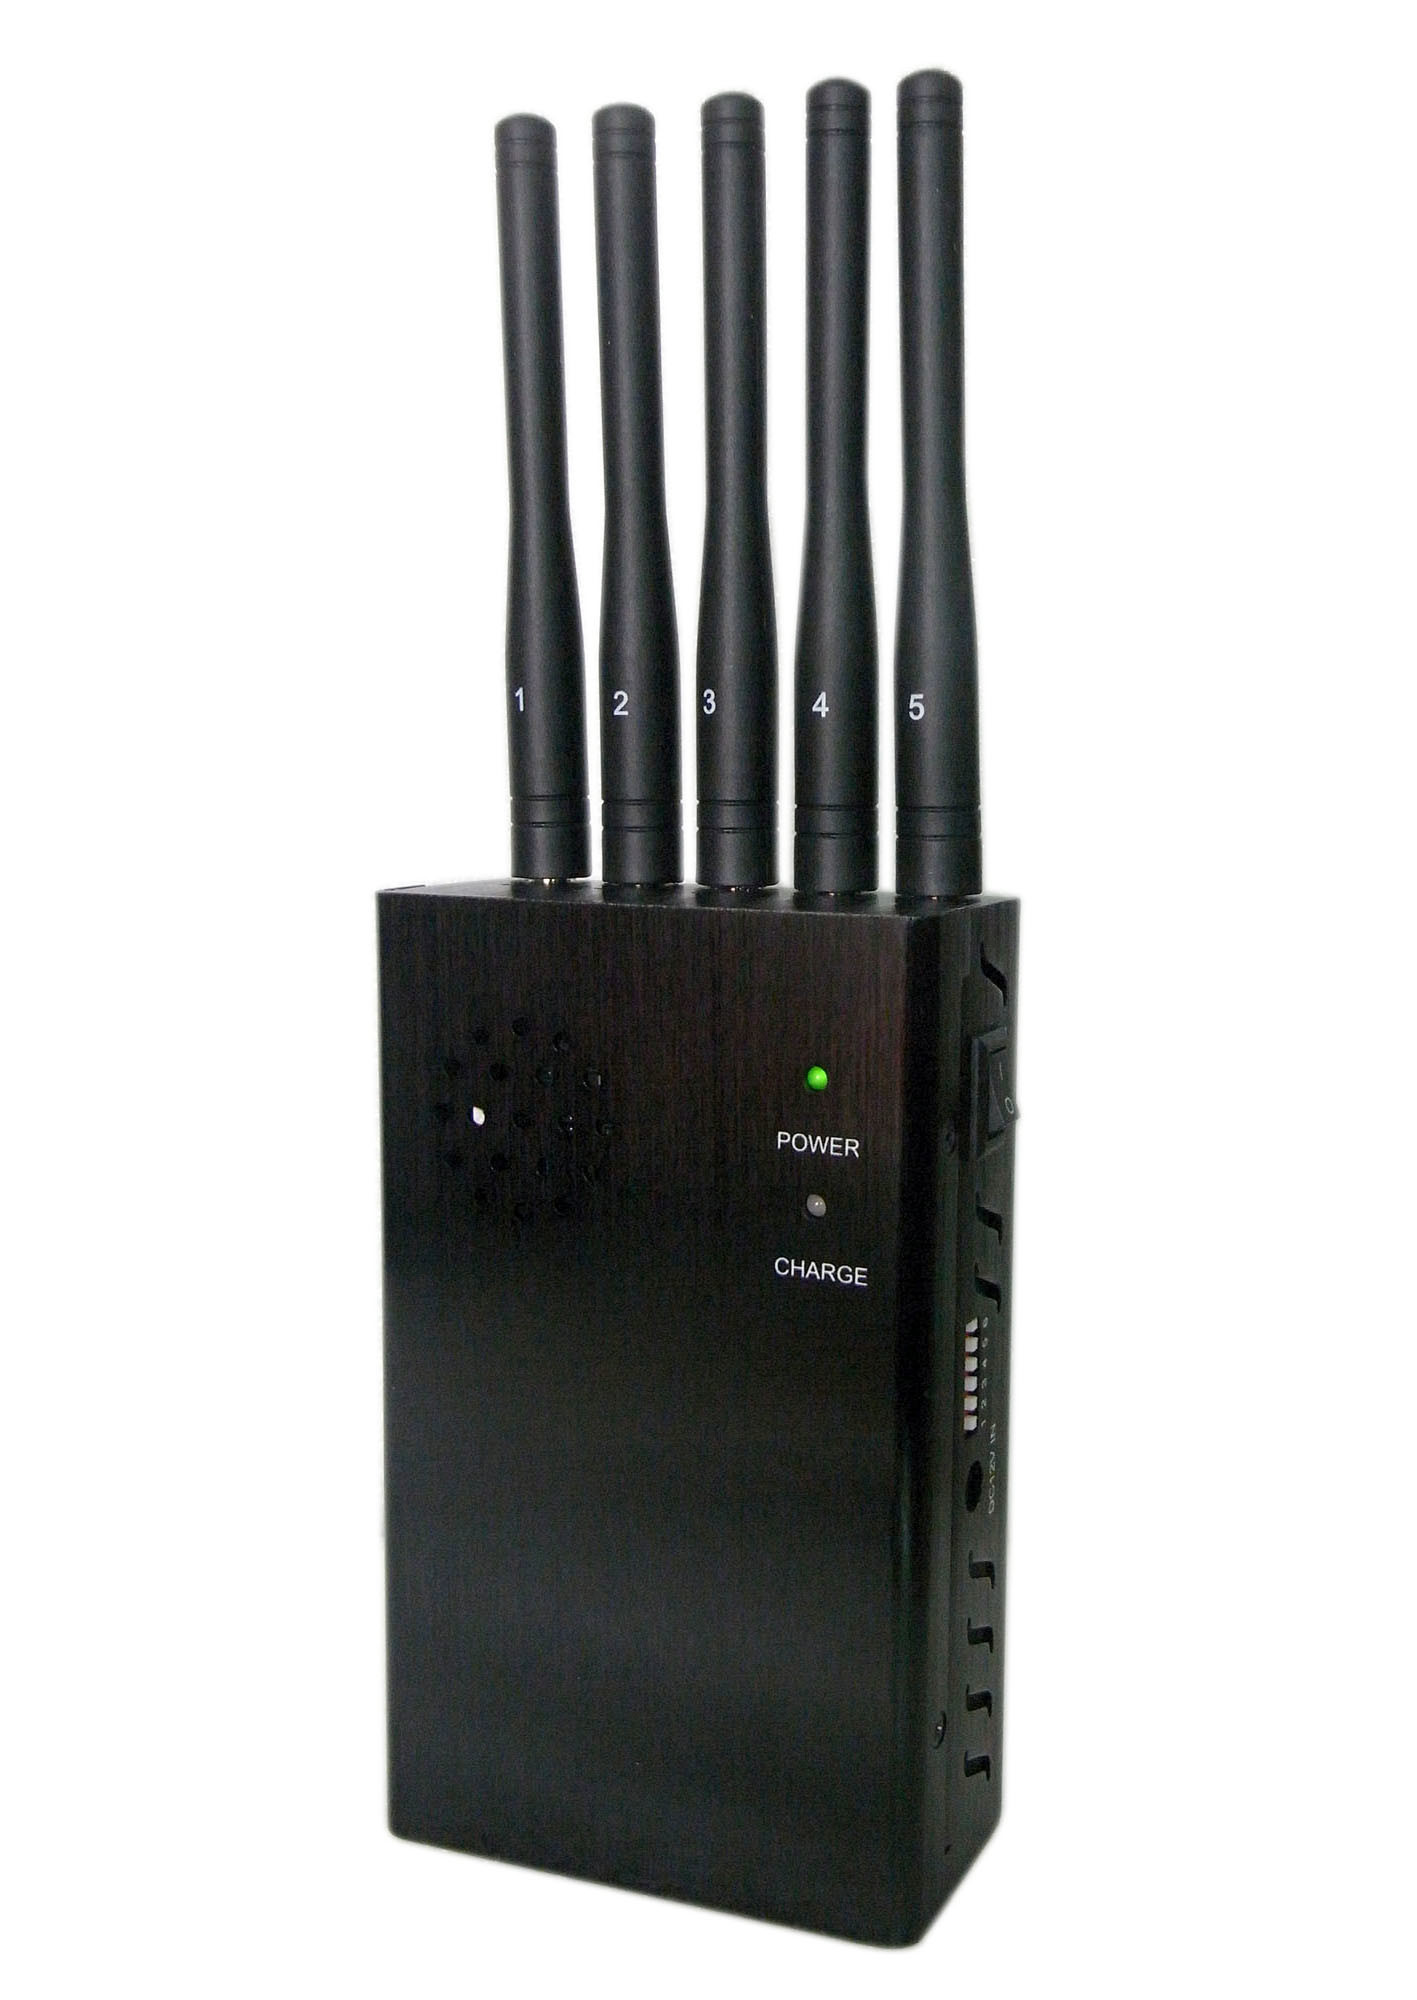 China New 5 Powerful Antenna 3G 4glte Wimax Signal Jamers, Cell Phone + GPS + WiFi Jammer 5 Antennas - China 5 Band Signal Blockers, Five Antennas Jammers